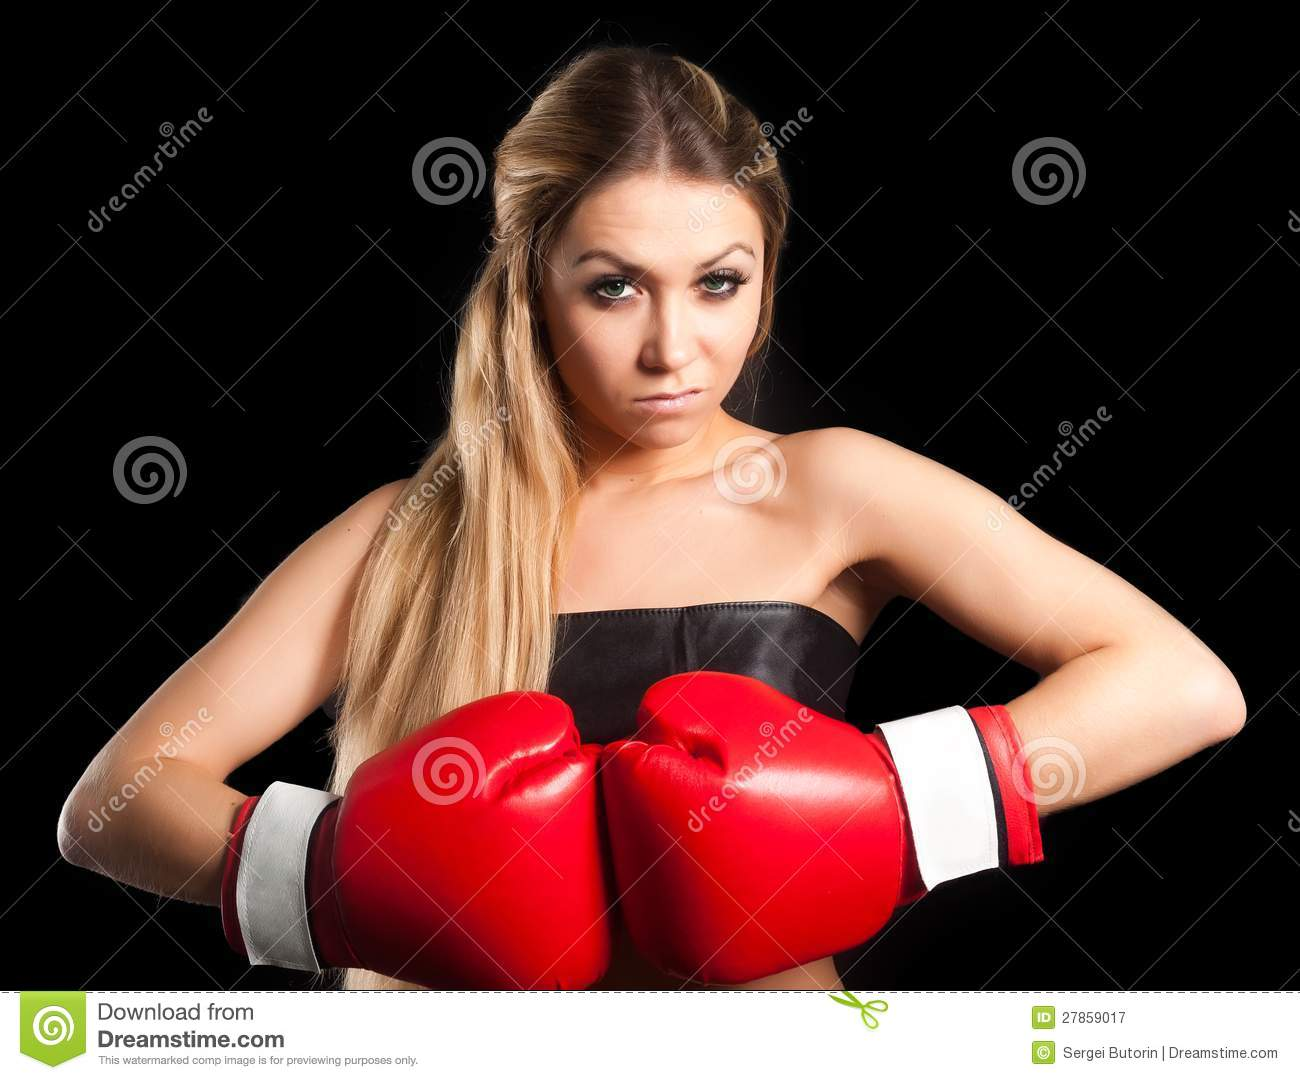 Brunette Topless Boxing Glove Stock Photos And Images